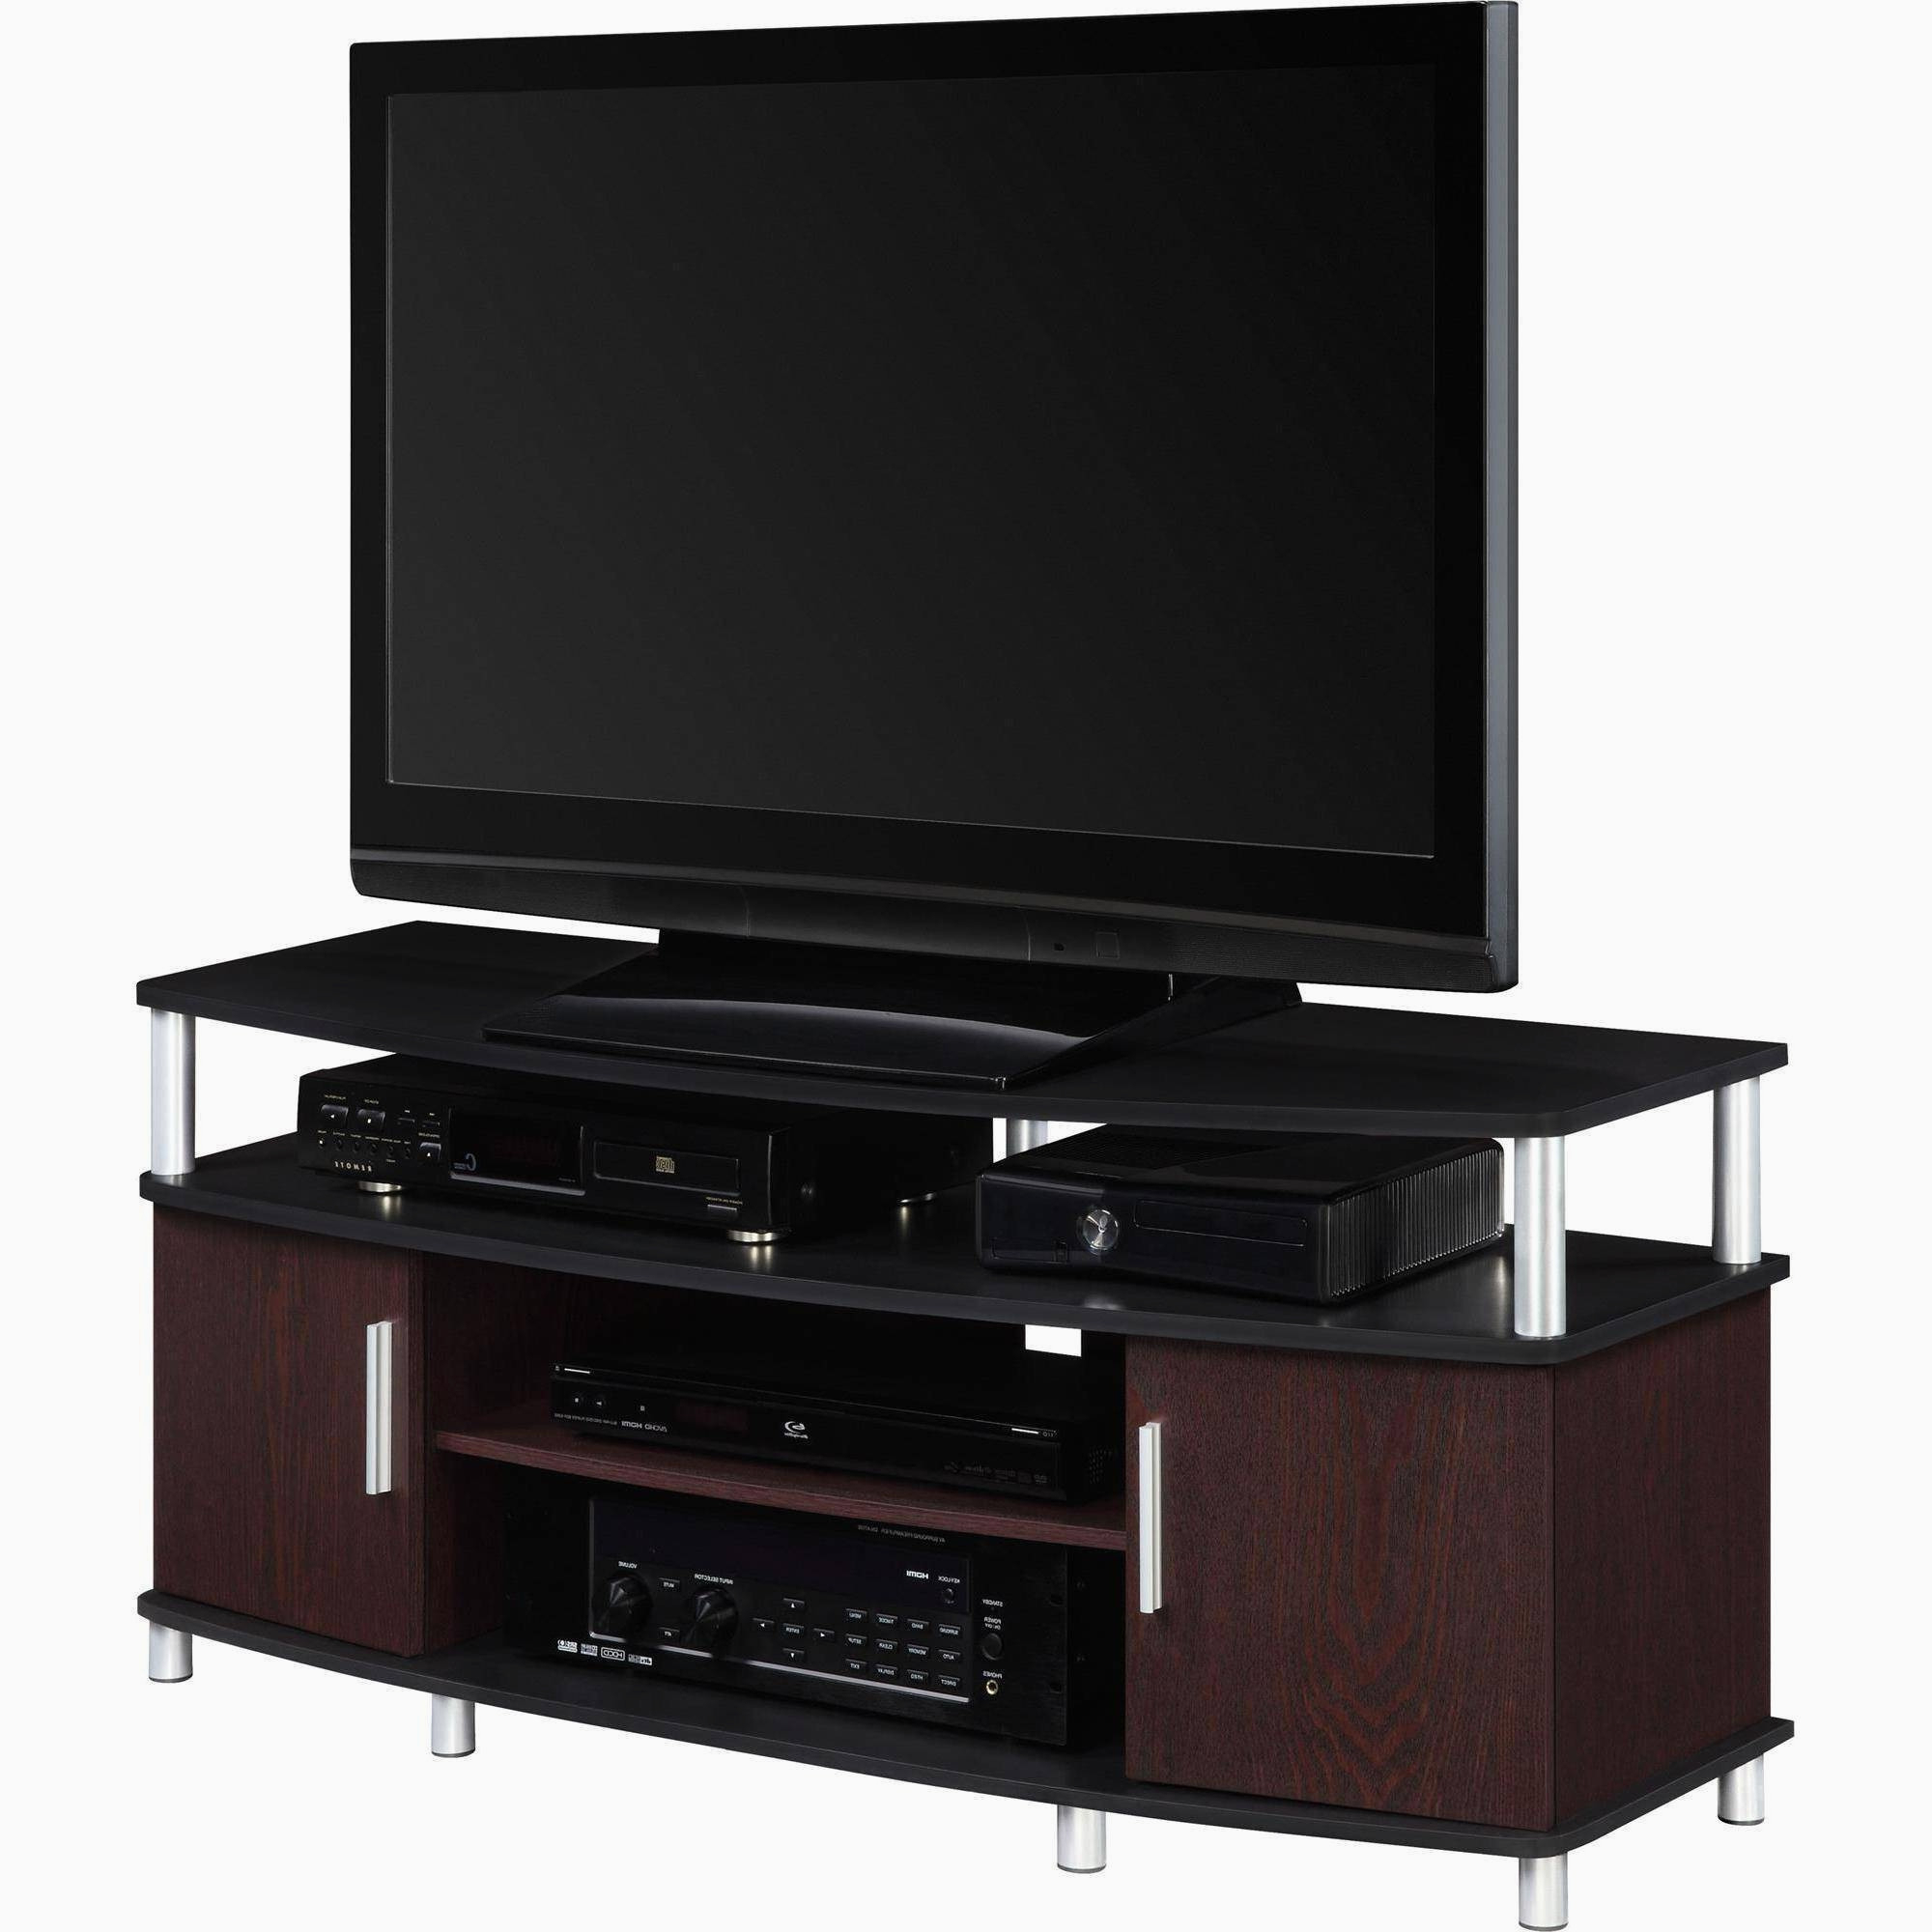 50 Inch Tv Stand Walmart Petite 2018 Best Of Emerson Tv Stands – To Regarding Latest Emerson Tv Stands (Gallery 3 of 20)